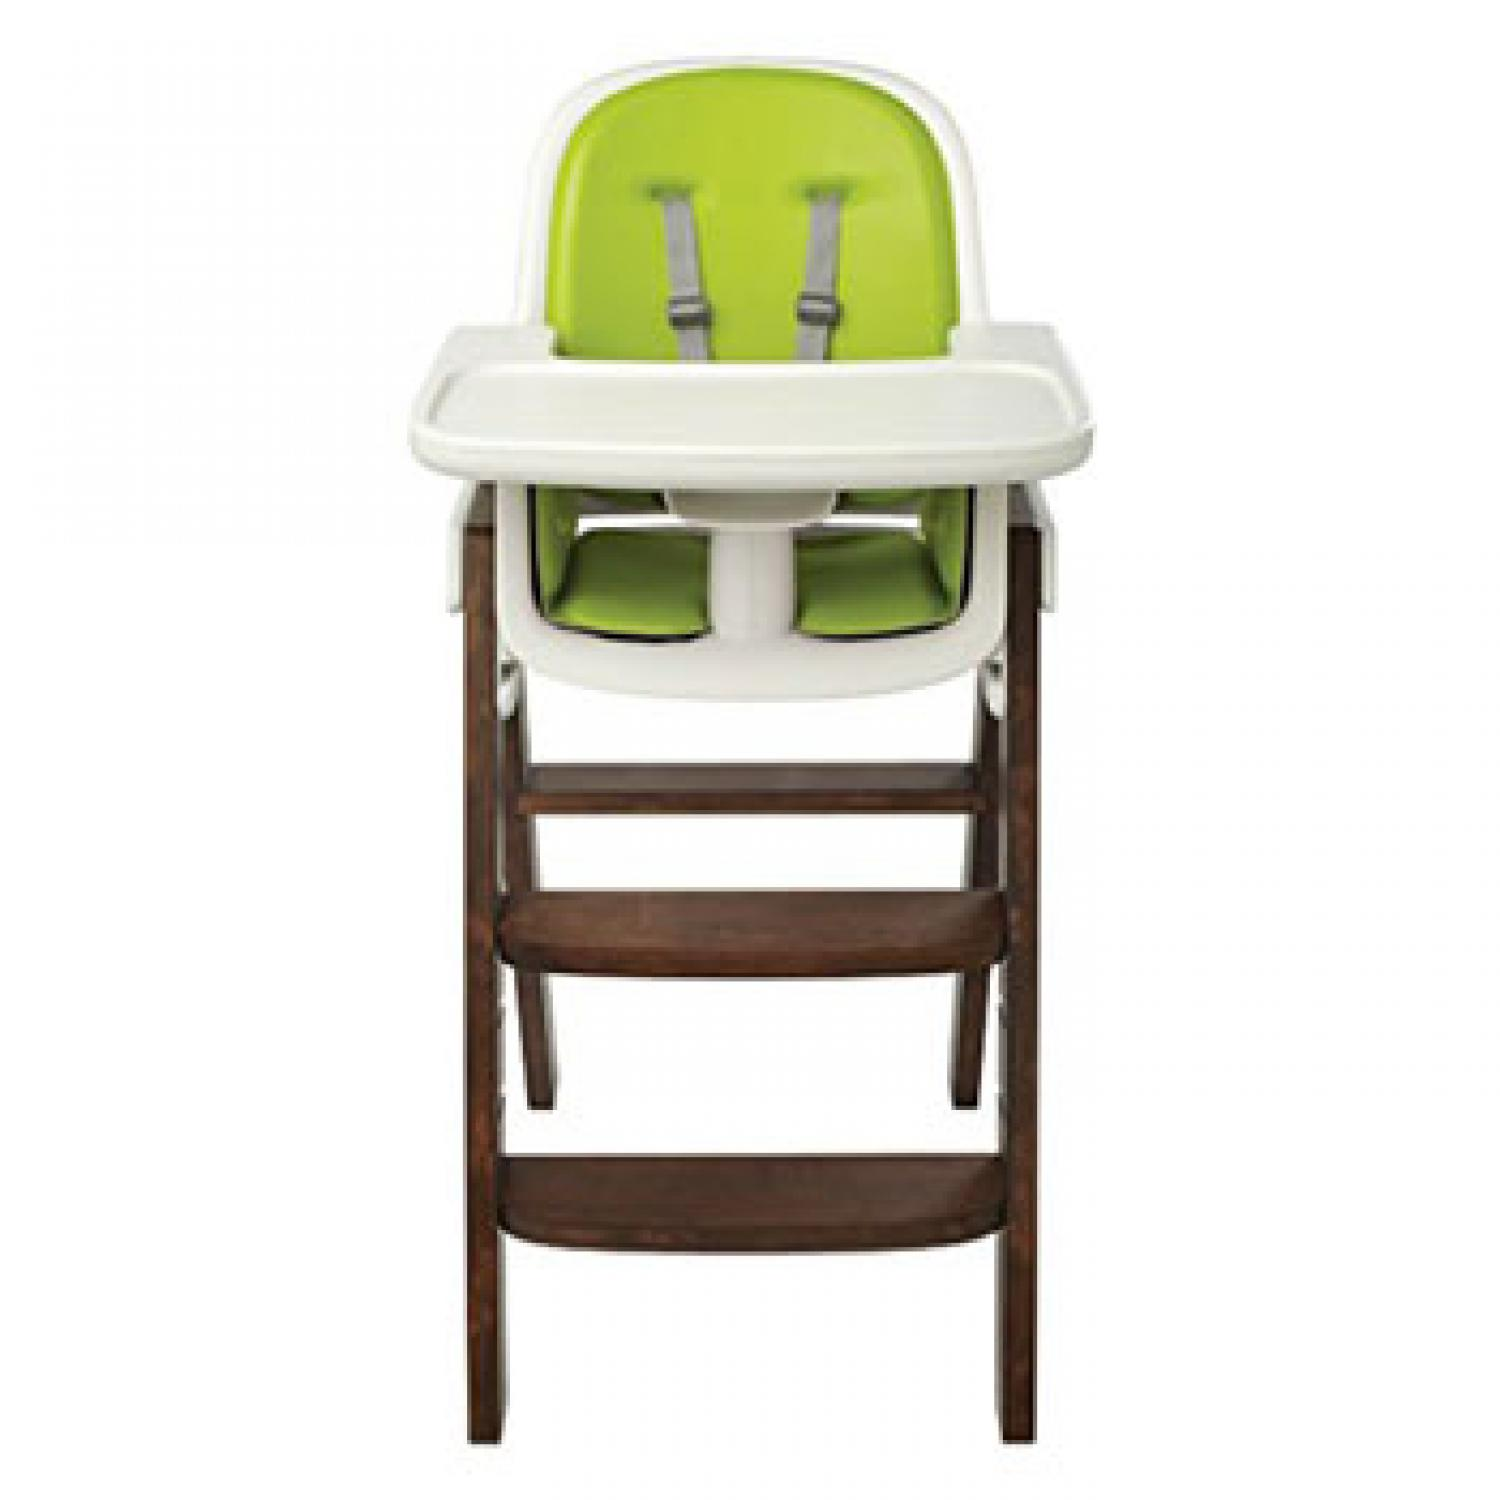 Eco friendly multifunction seating Comfortable Best High Chairs Parenting Best High Chairs Parenting